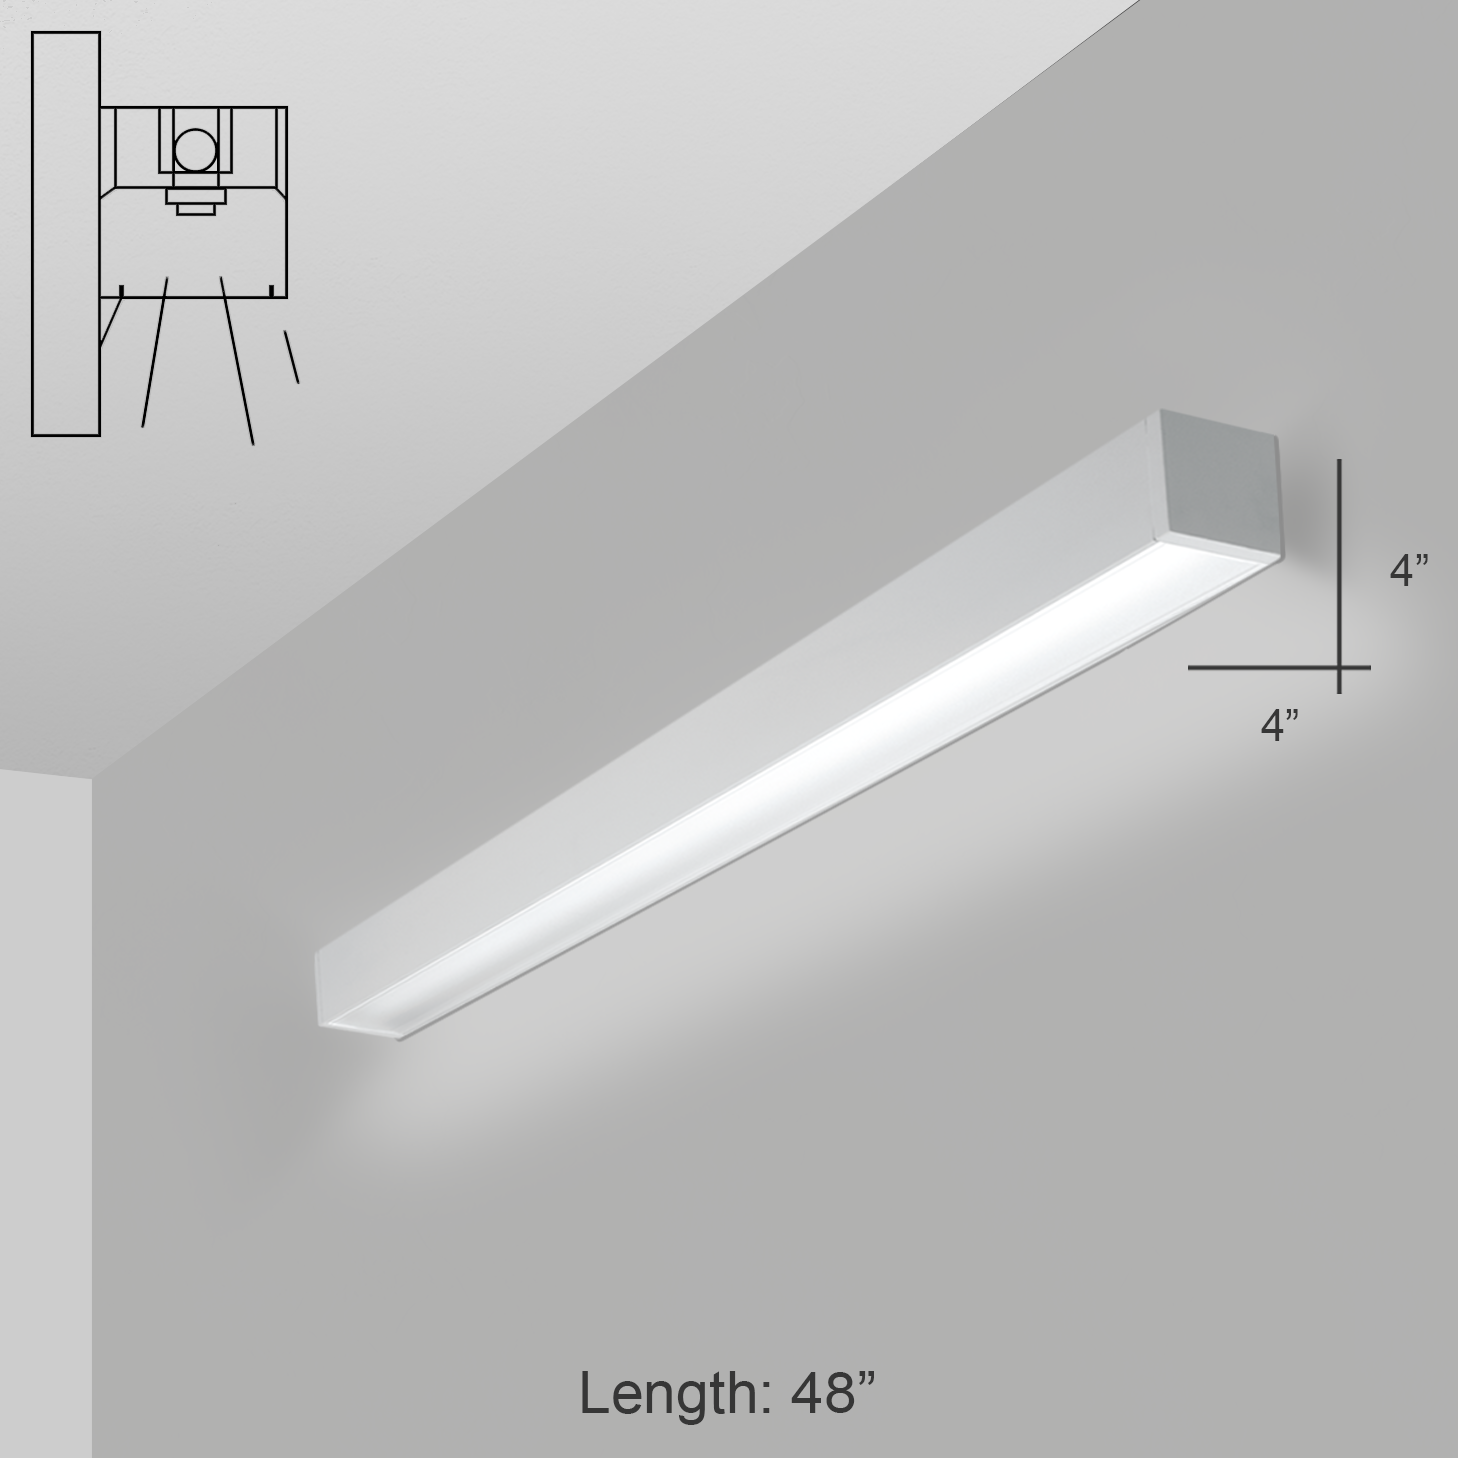 Alcon Lighting 11141-4-W i44 Series Architectural LED 4 Foot ... for Wall Foot Light  155fiz